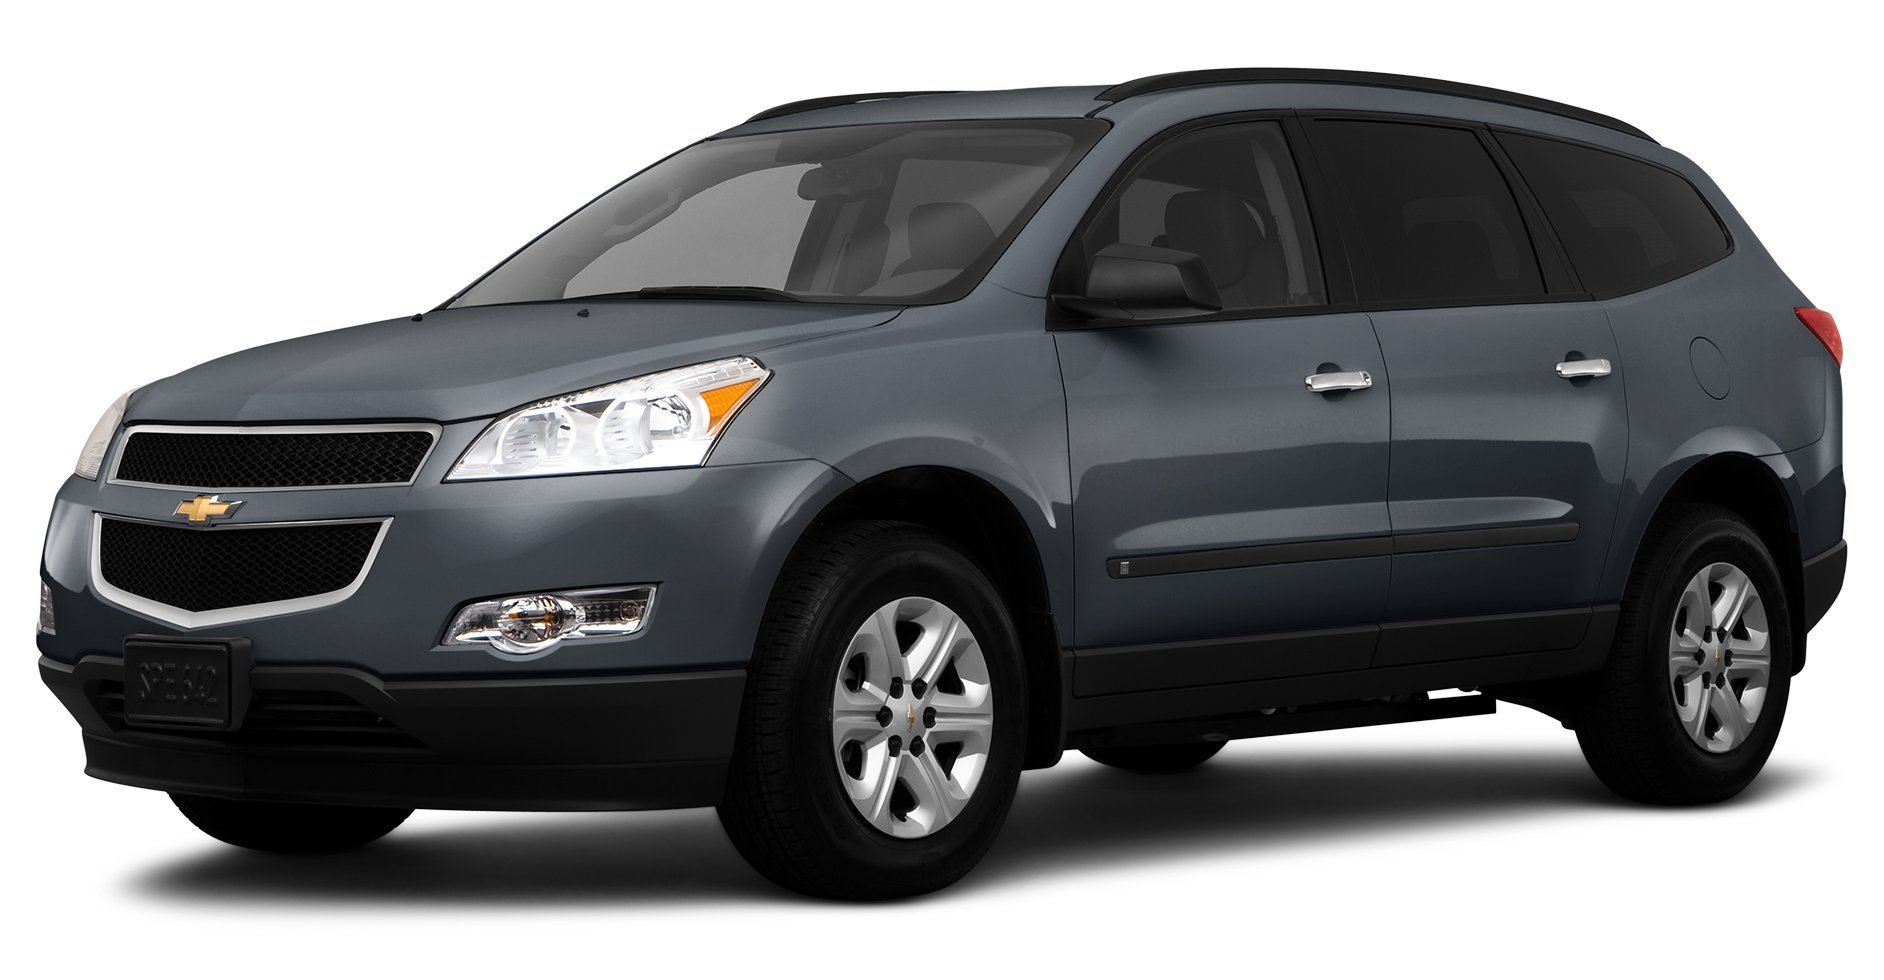 2010 chevrolet traverse reviews images and specs vehicles. Black Bedroom Furniture Sets. Home Design Ideas